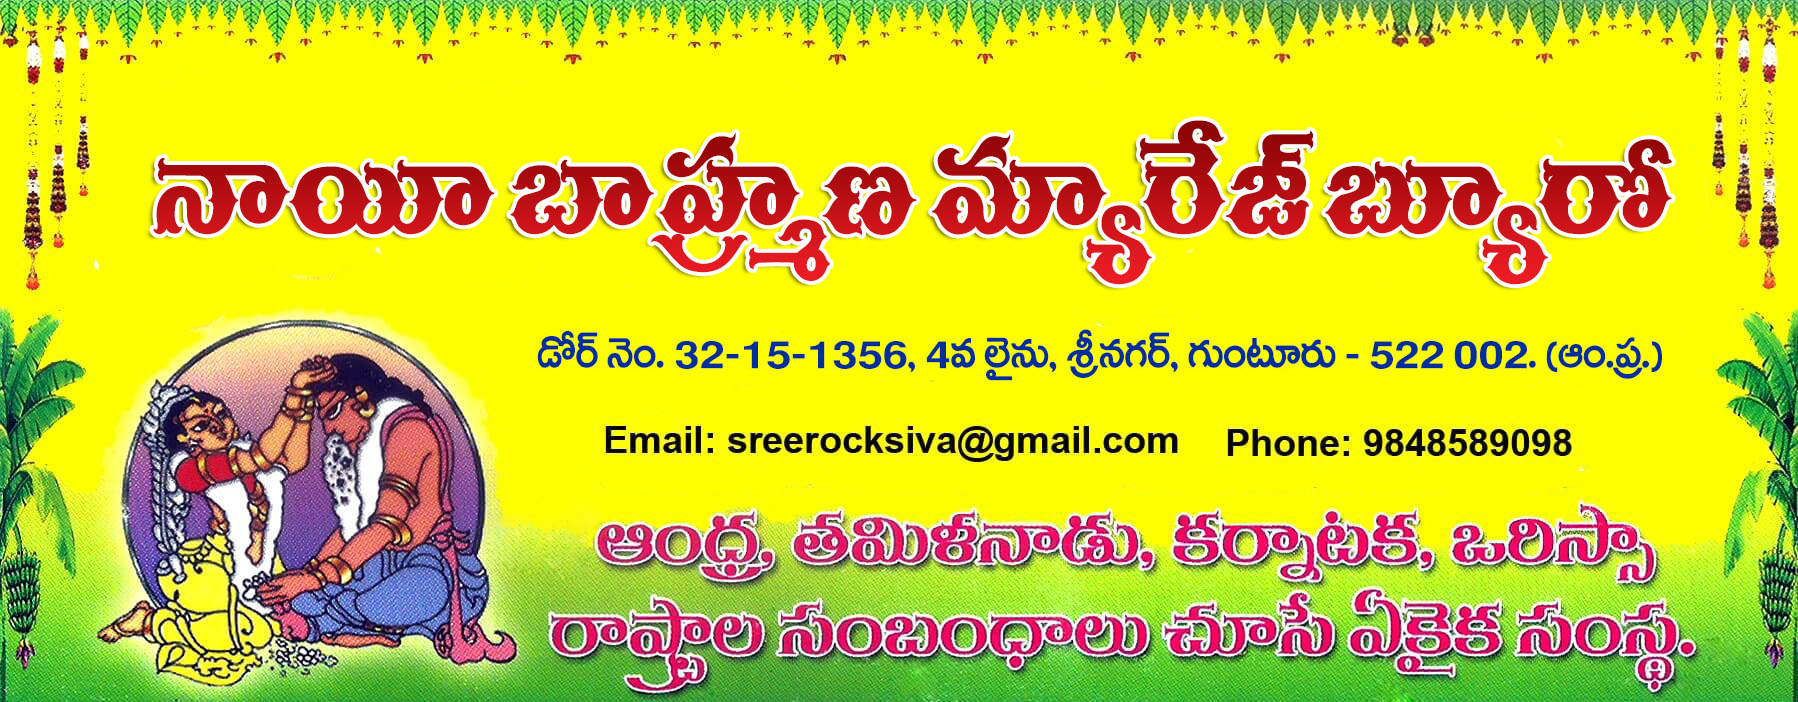 Nayee Brahmin Marriage Bureau